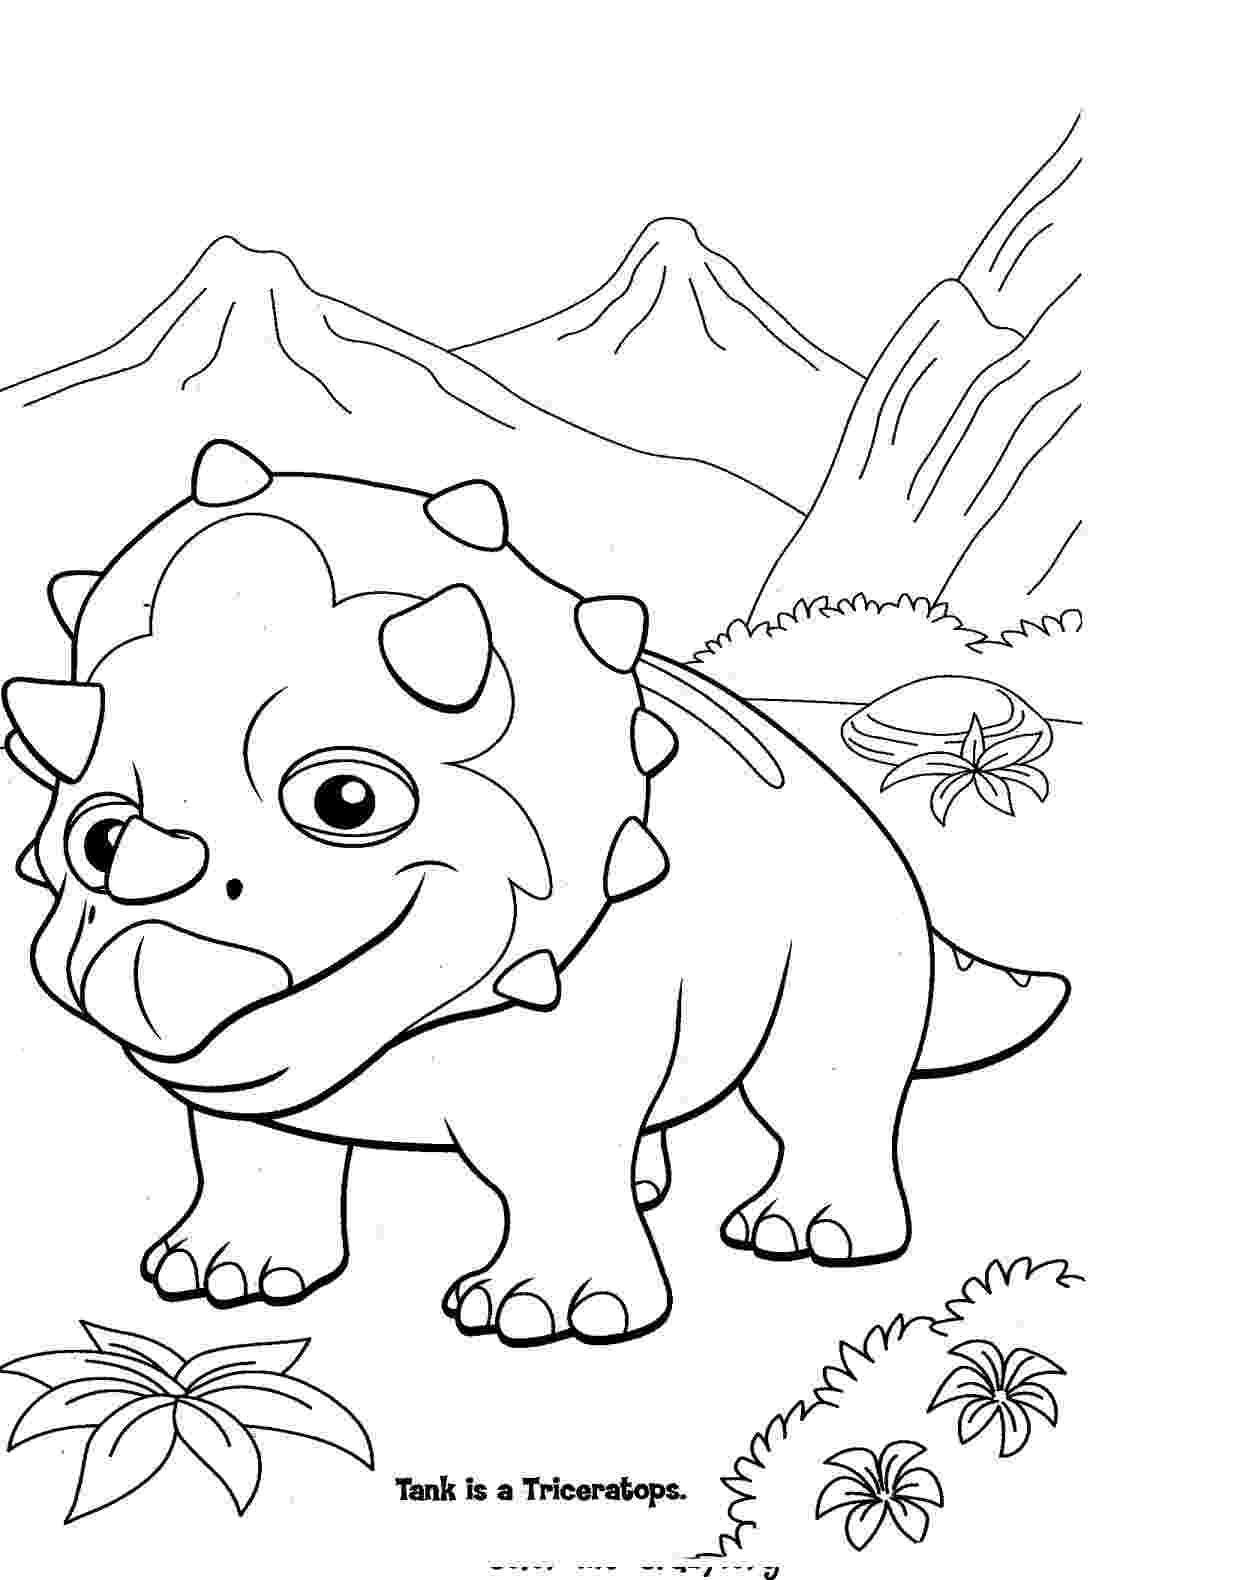 colouring pages dinosaurs printable free printable dinosaur coloring pages for kids printable colouring dinosaurs pages